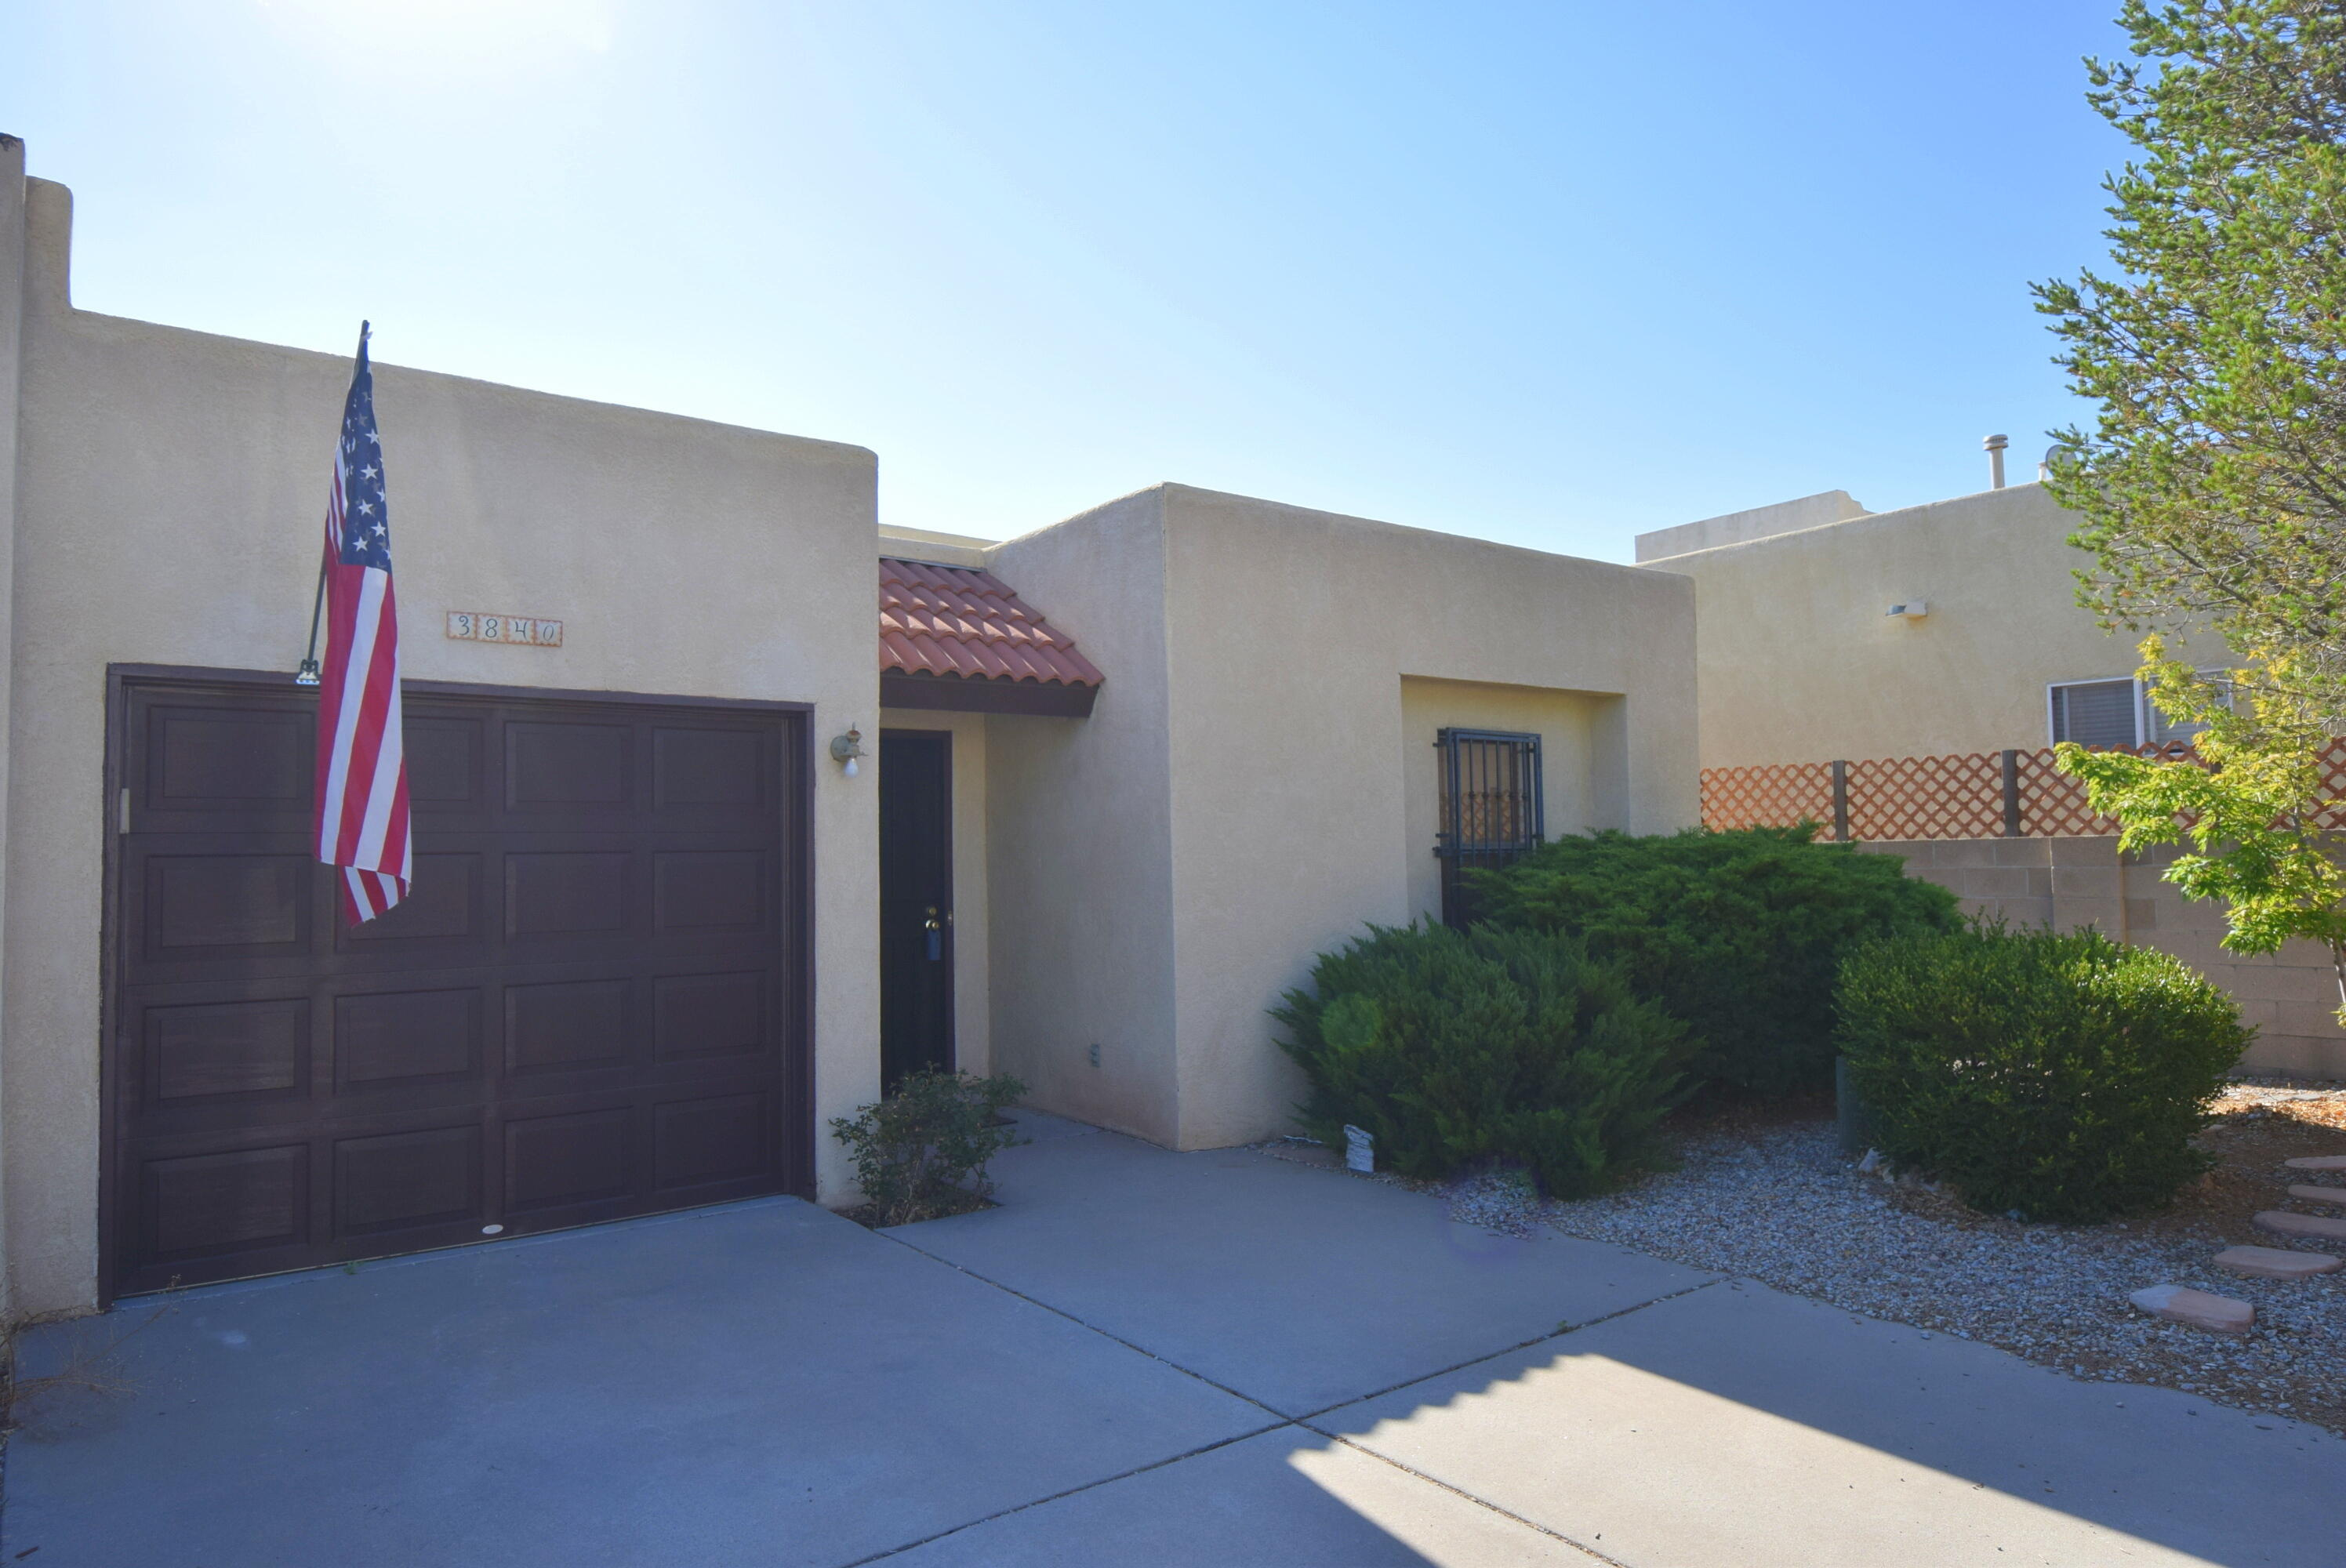 Must see this cozy townhome! Gourmet Kitchen with solid surface counters, stunning cherry cabinets and stainless appliances. Open floorplan offers ease of entertaining. Refrigerated air, water softener, skylights and views of the Sandias. Conveniently located to I40, shopping, restaurants and main streets.